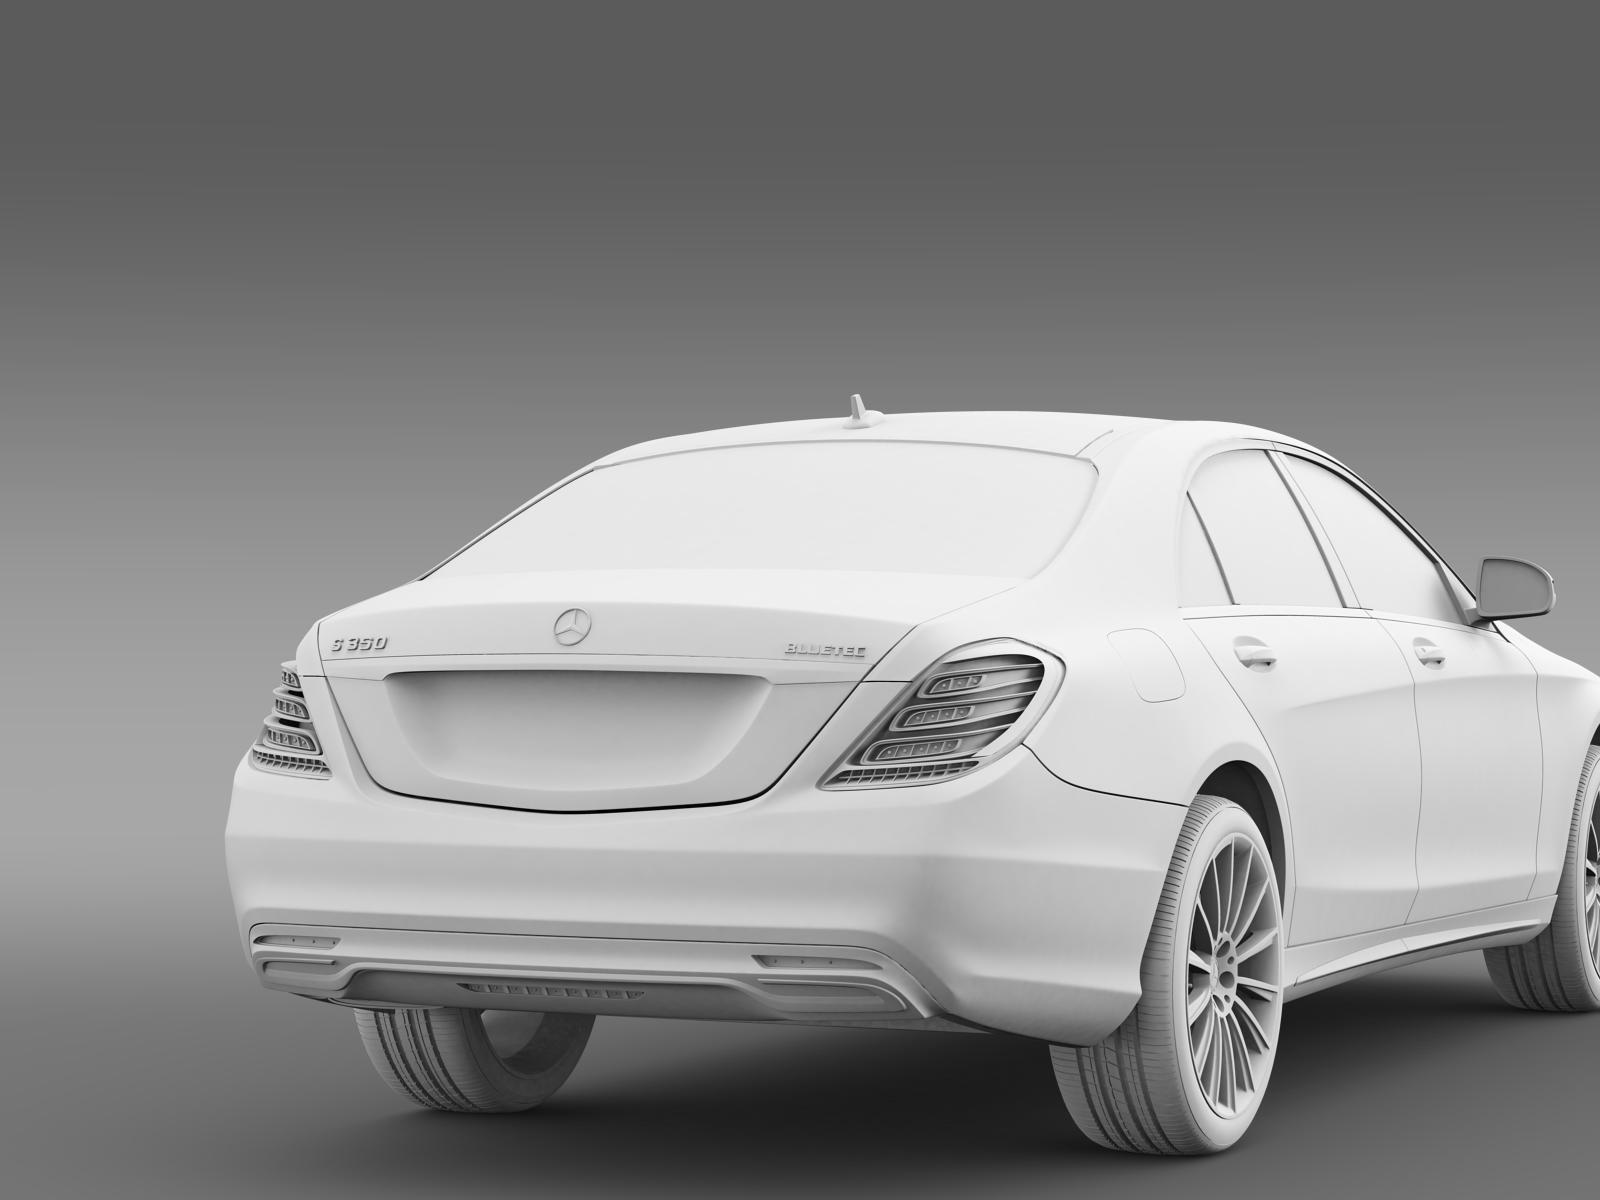 Amg mercedes benz s 350 bluetec w222 2013 3d model for Mercedes benz s 350